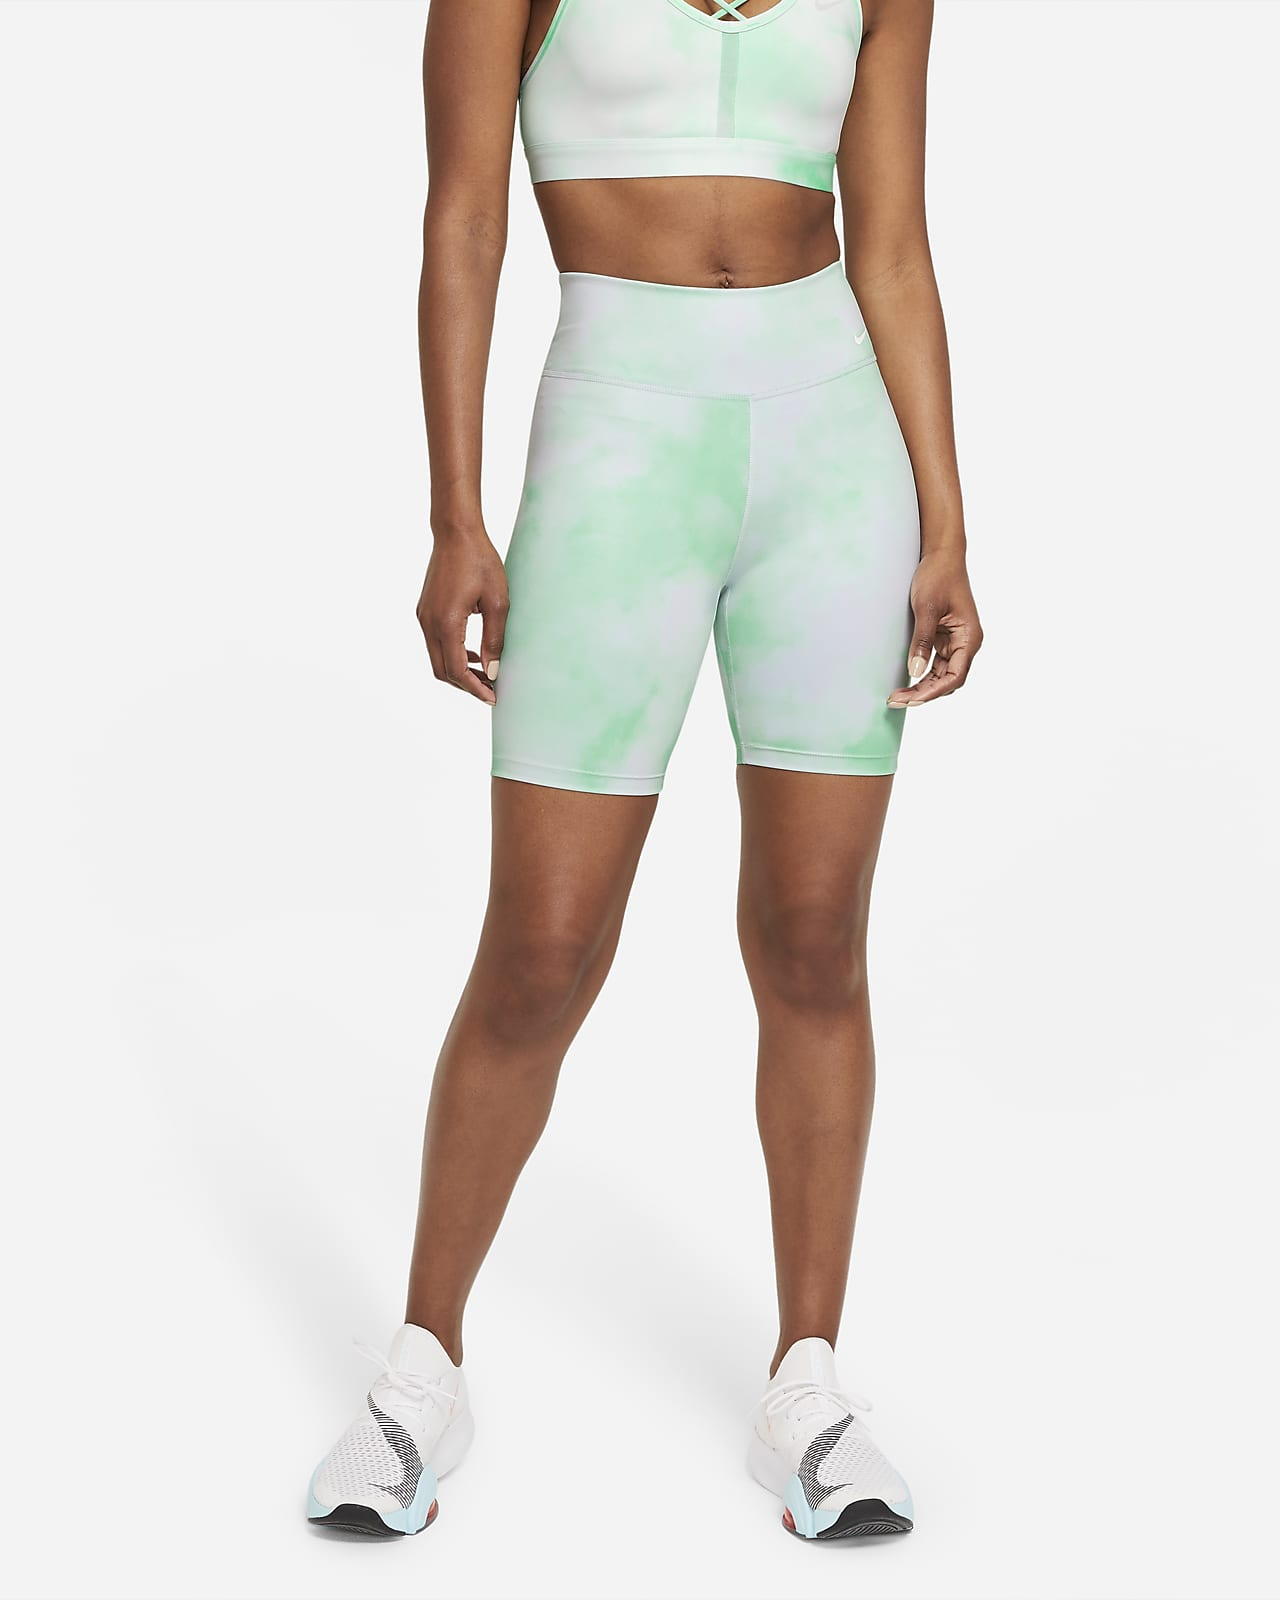 Nike One Icon Clash Women's 18cm (approx.) Printed Shorts